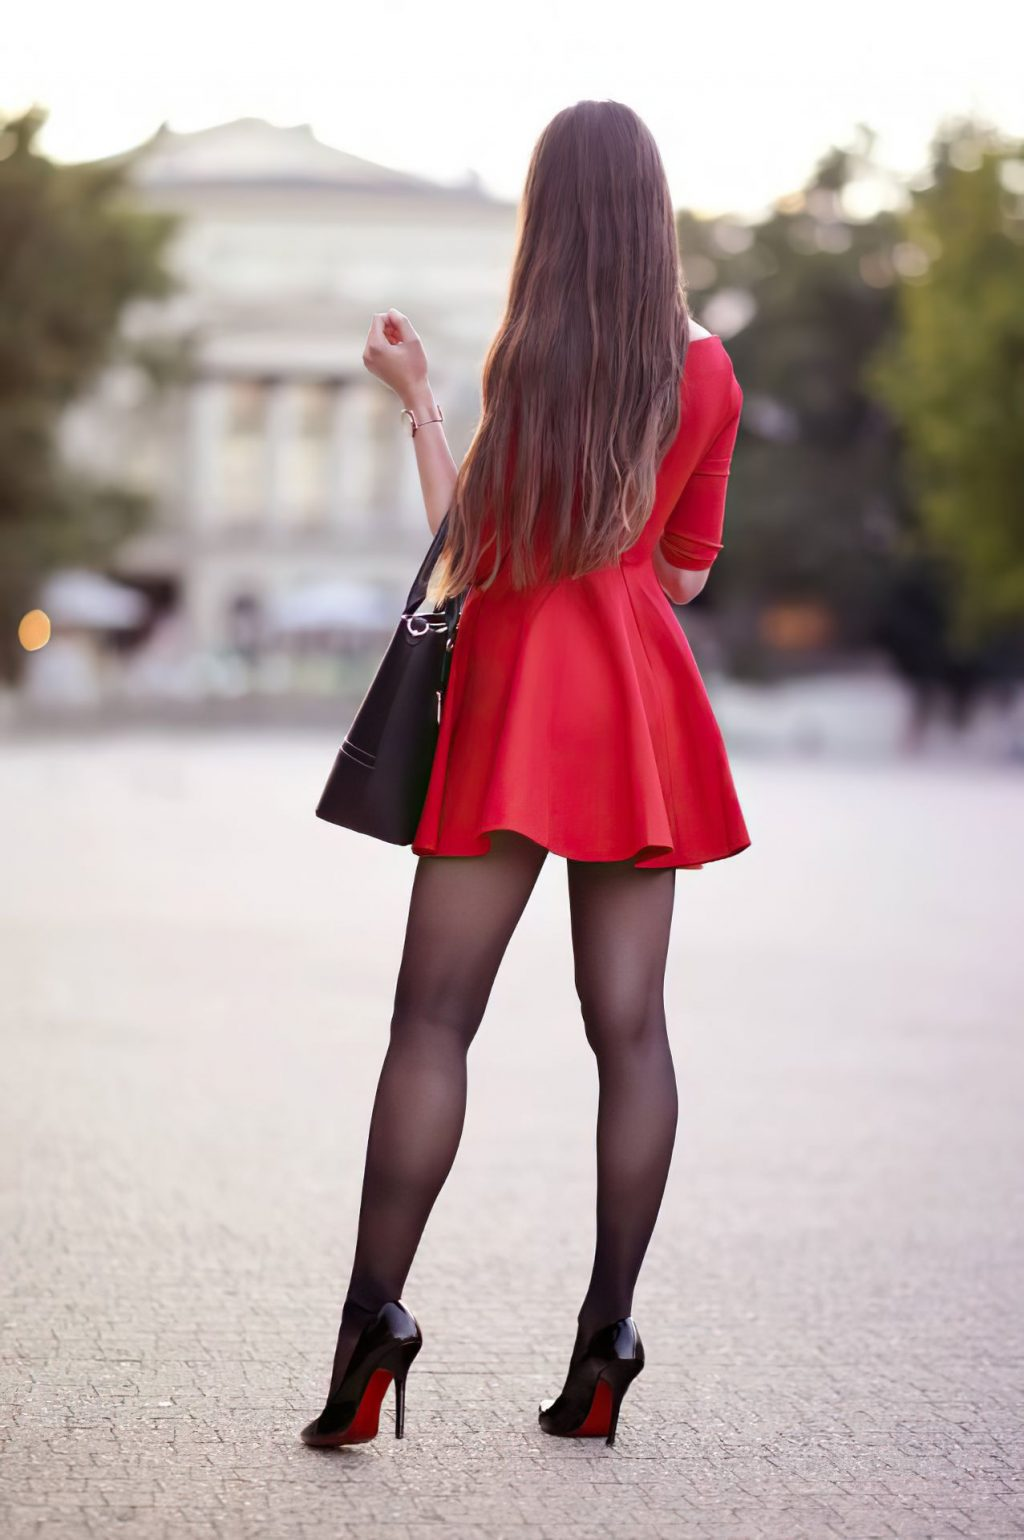 Sexy Ariadna Majewska Poses in a Red Dress (13 Photos)